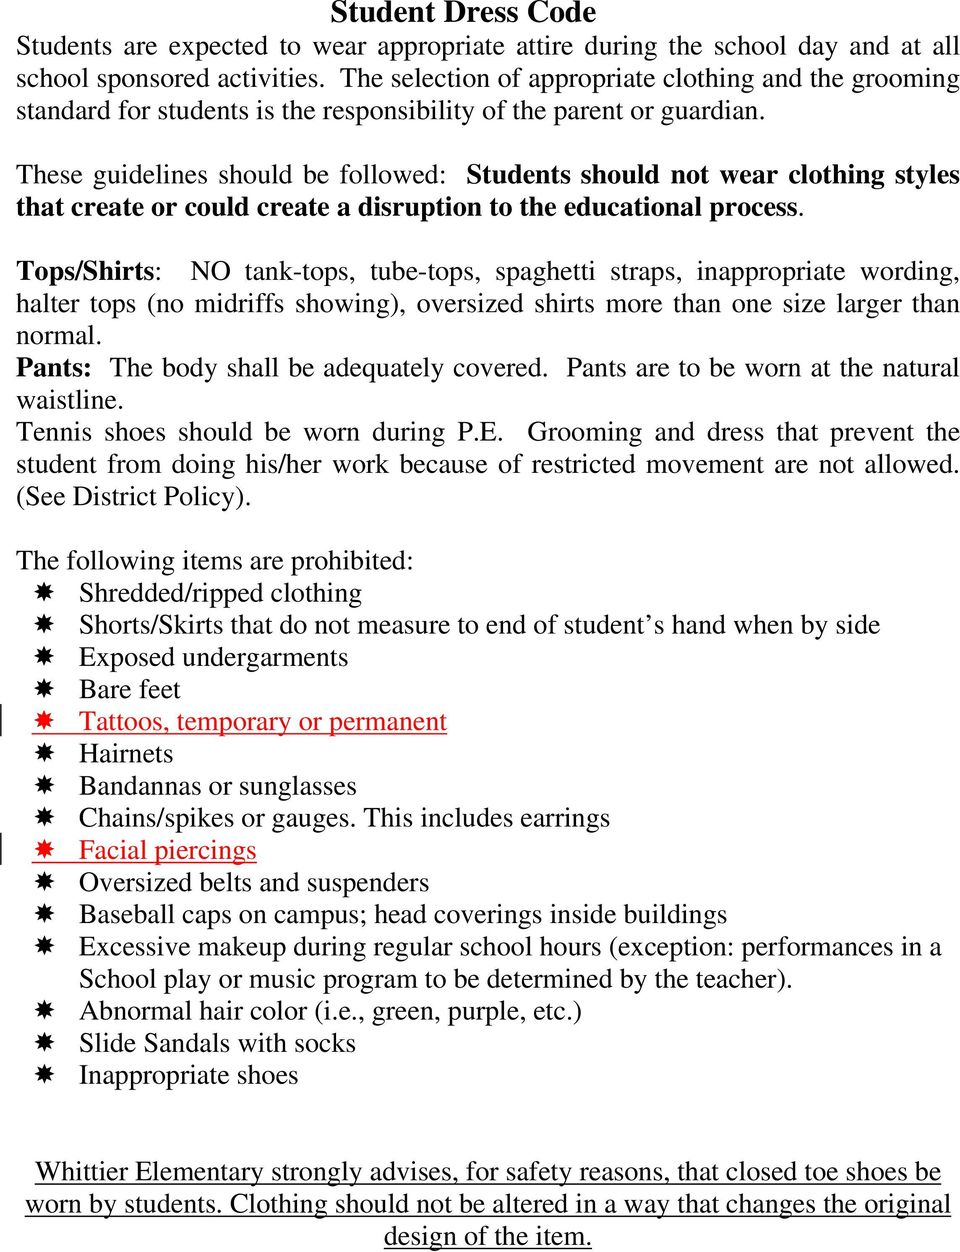 These guidelines should be followed: Students should not wear clothing styles that create or could create a disruption to the educational process.